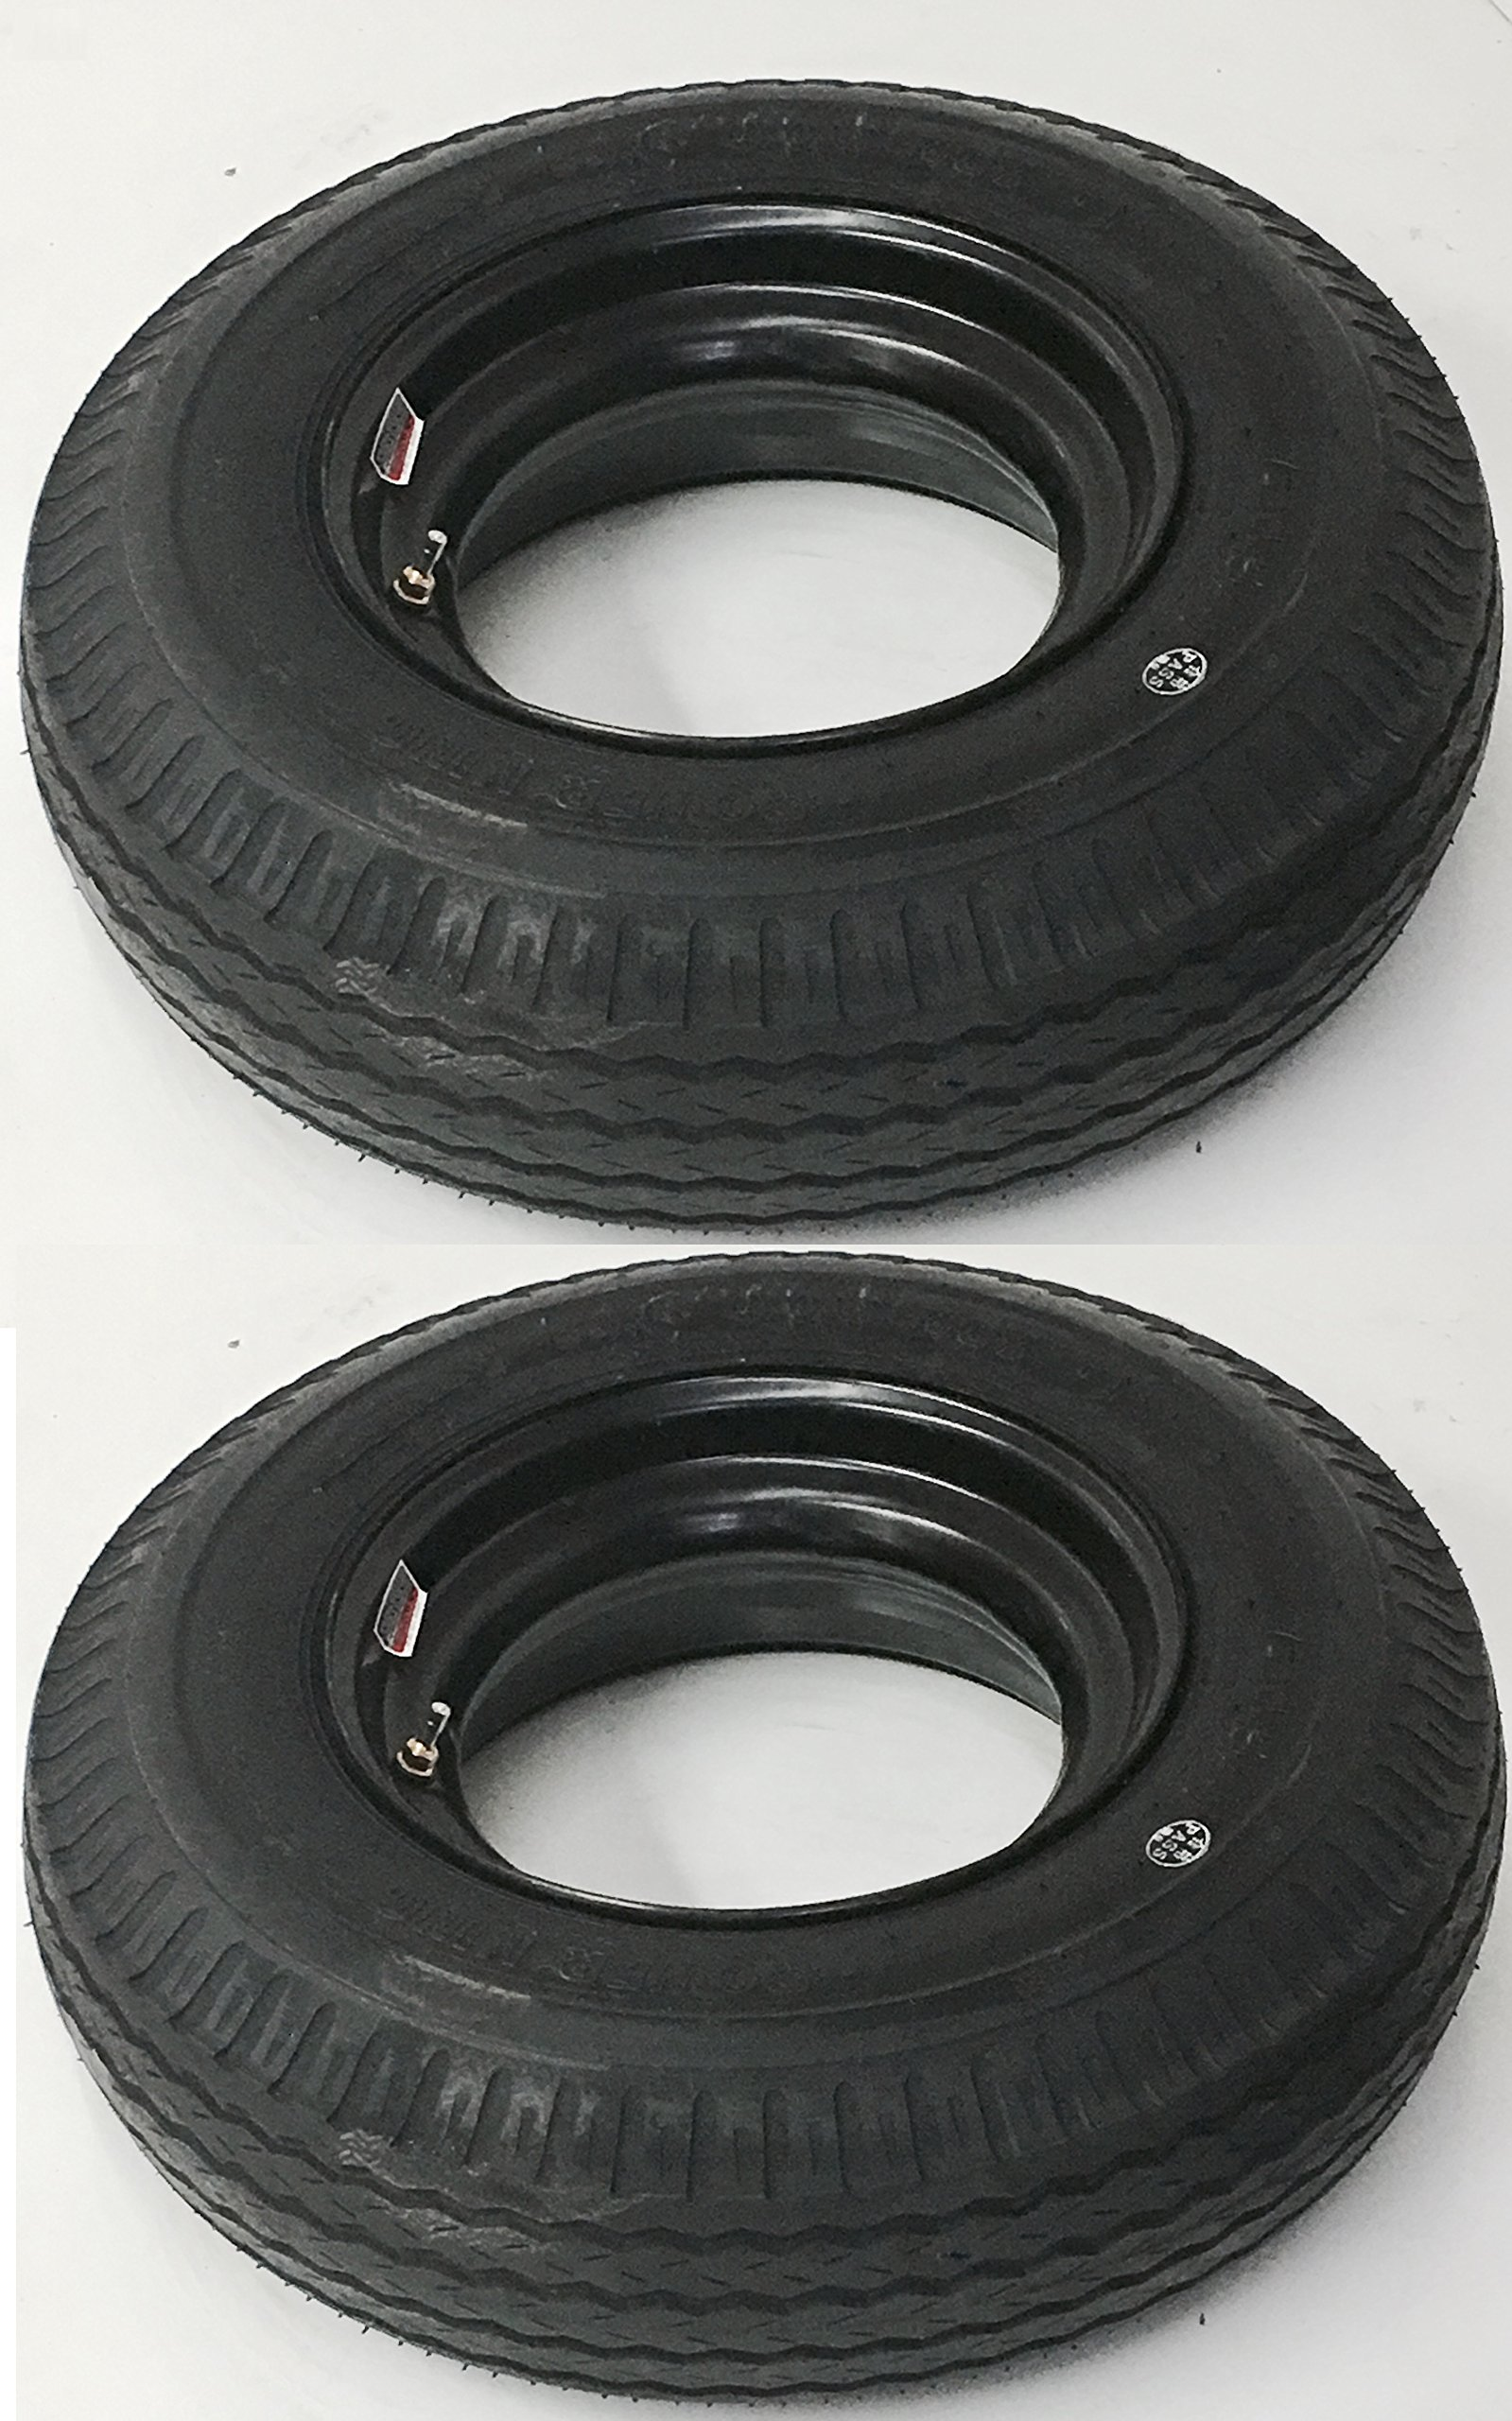 Two Open Center Mobile Home Trailer Tires & Rims 7X14.5 7-14.5 14.5 Load F 12Ply